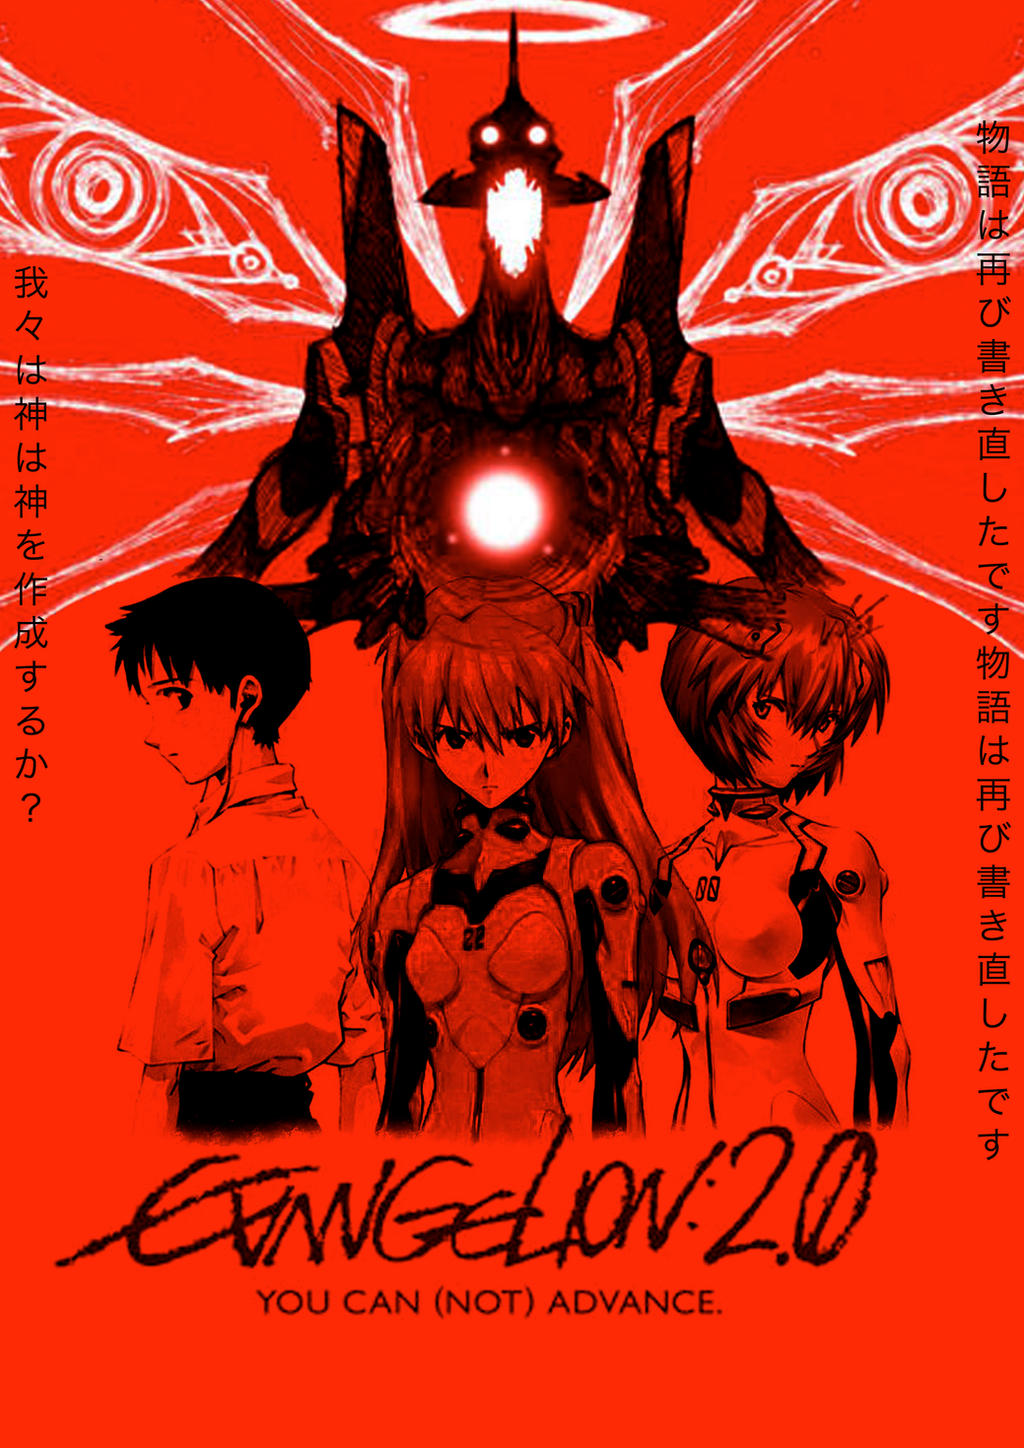 Evangelion 20 Fanmade Poster By Kraus Illustration